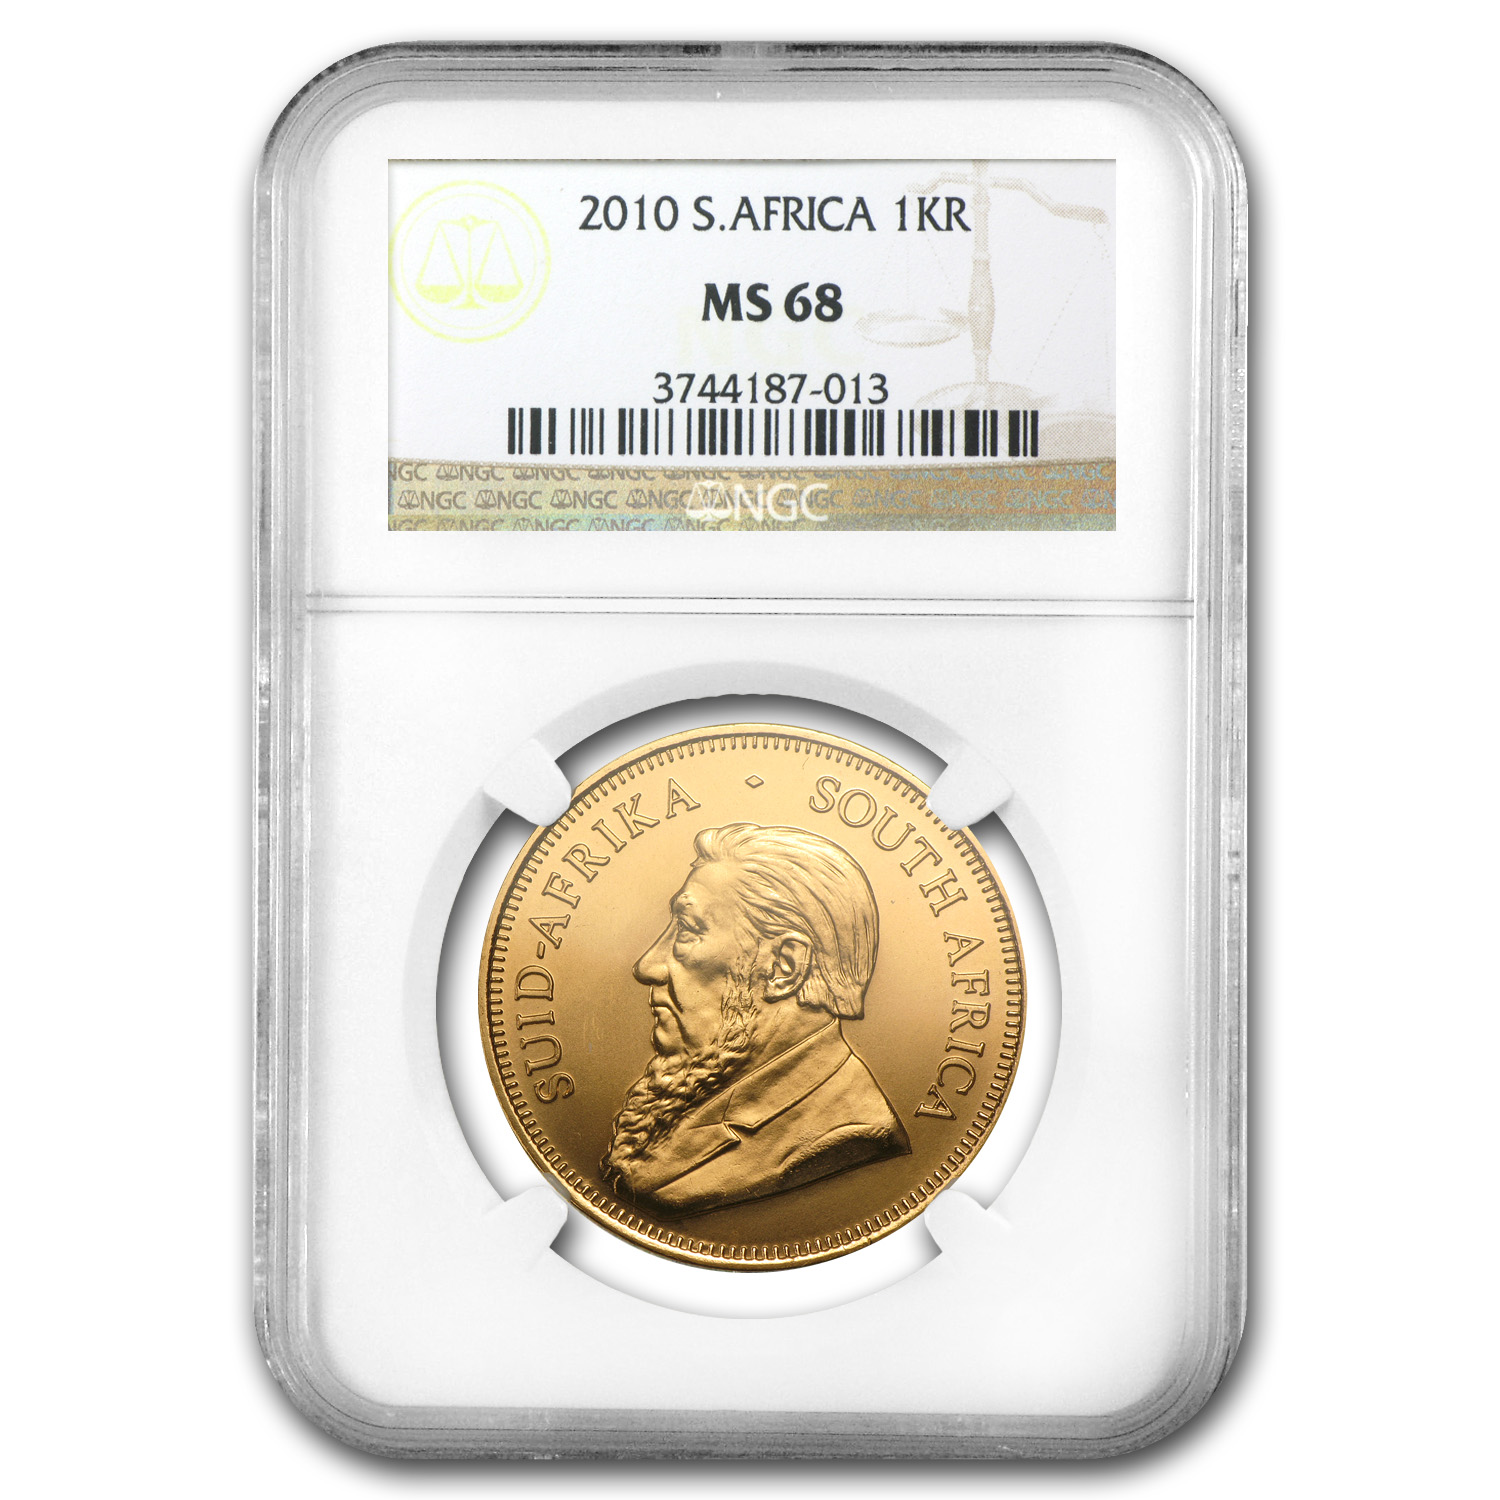 2010 1 oz Gold South African Krugerrand MS-68 NGC